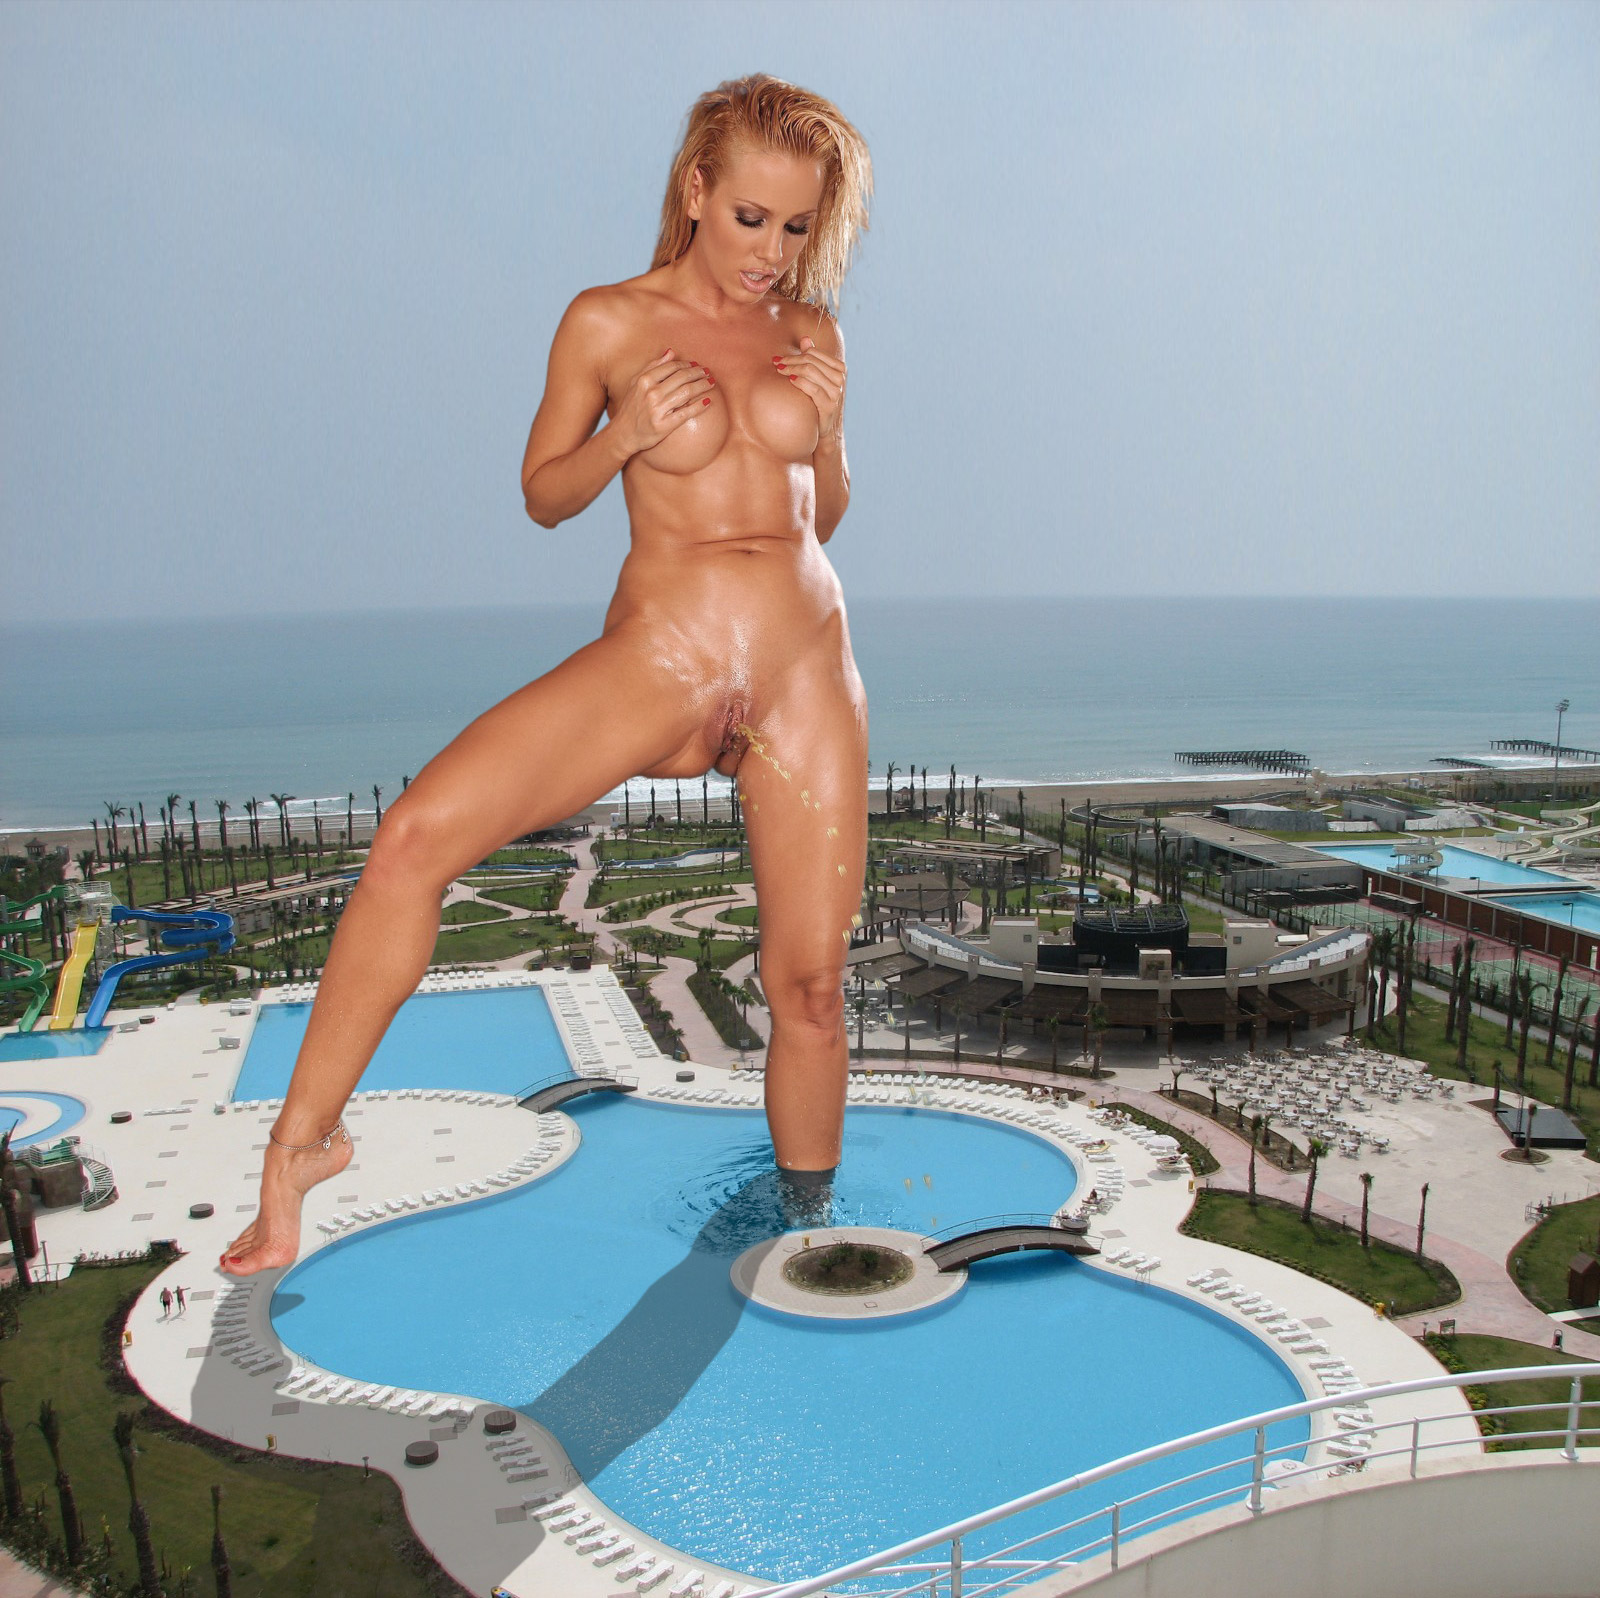 Naked giantess photos sexy tube